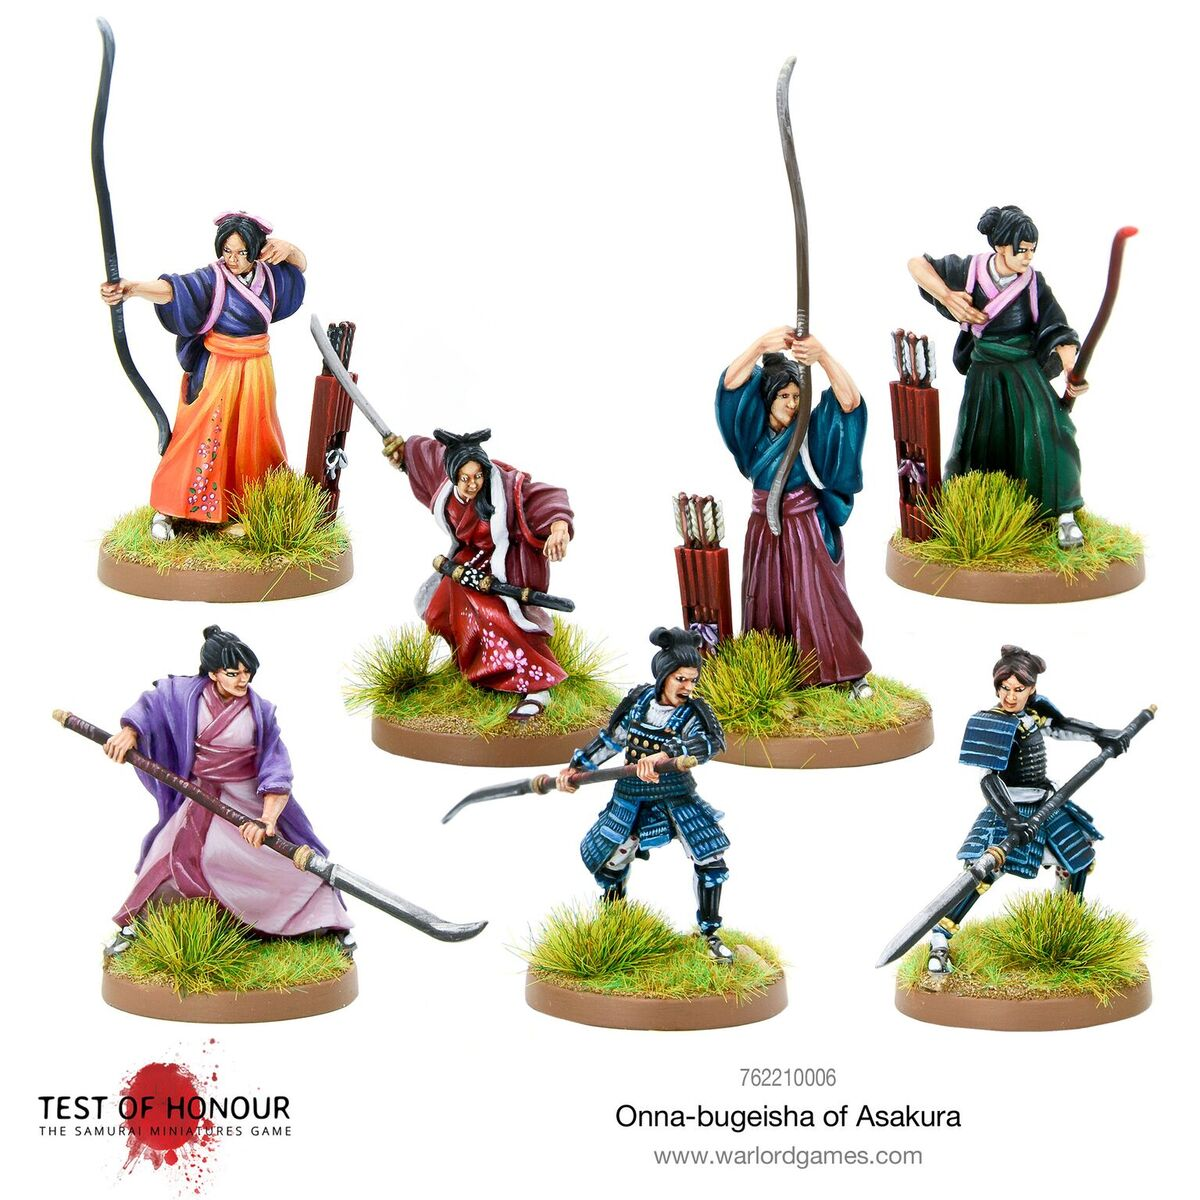 Test of Honour Onna Bugeisha of Asakura